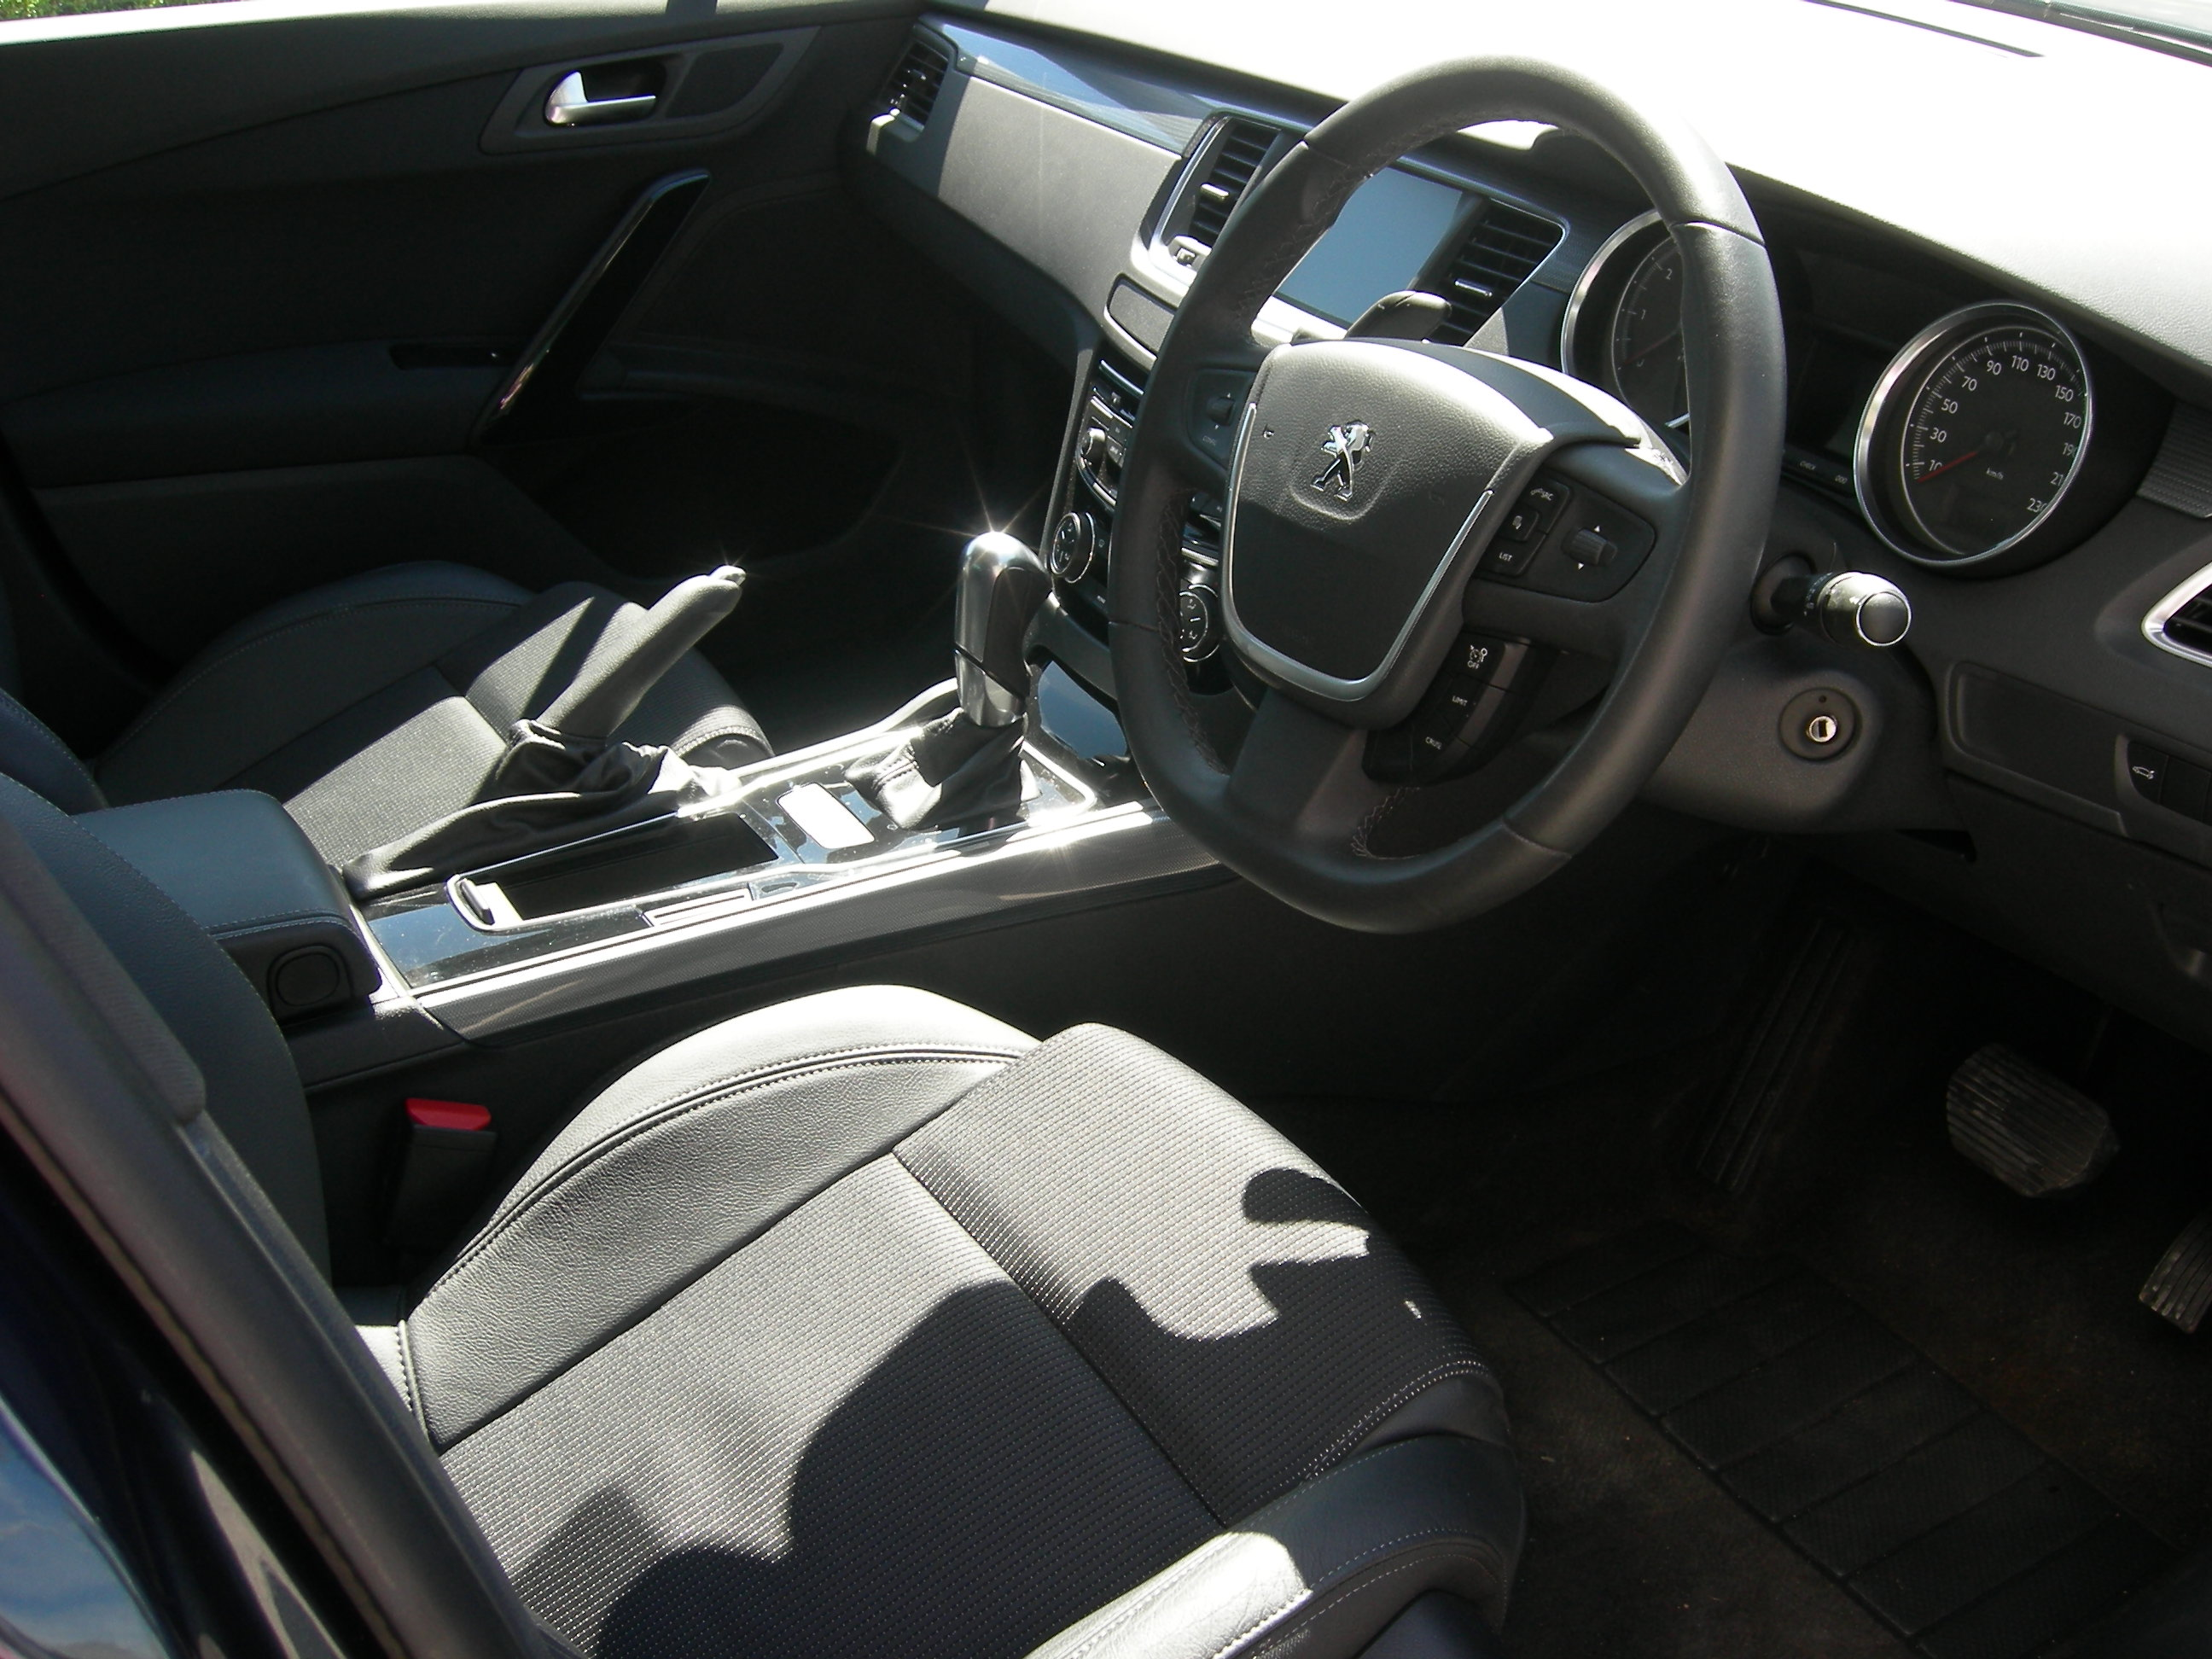 Peugeot 508 for sale in Perth